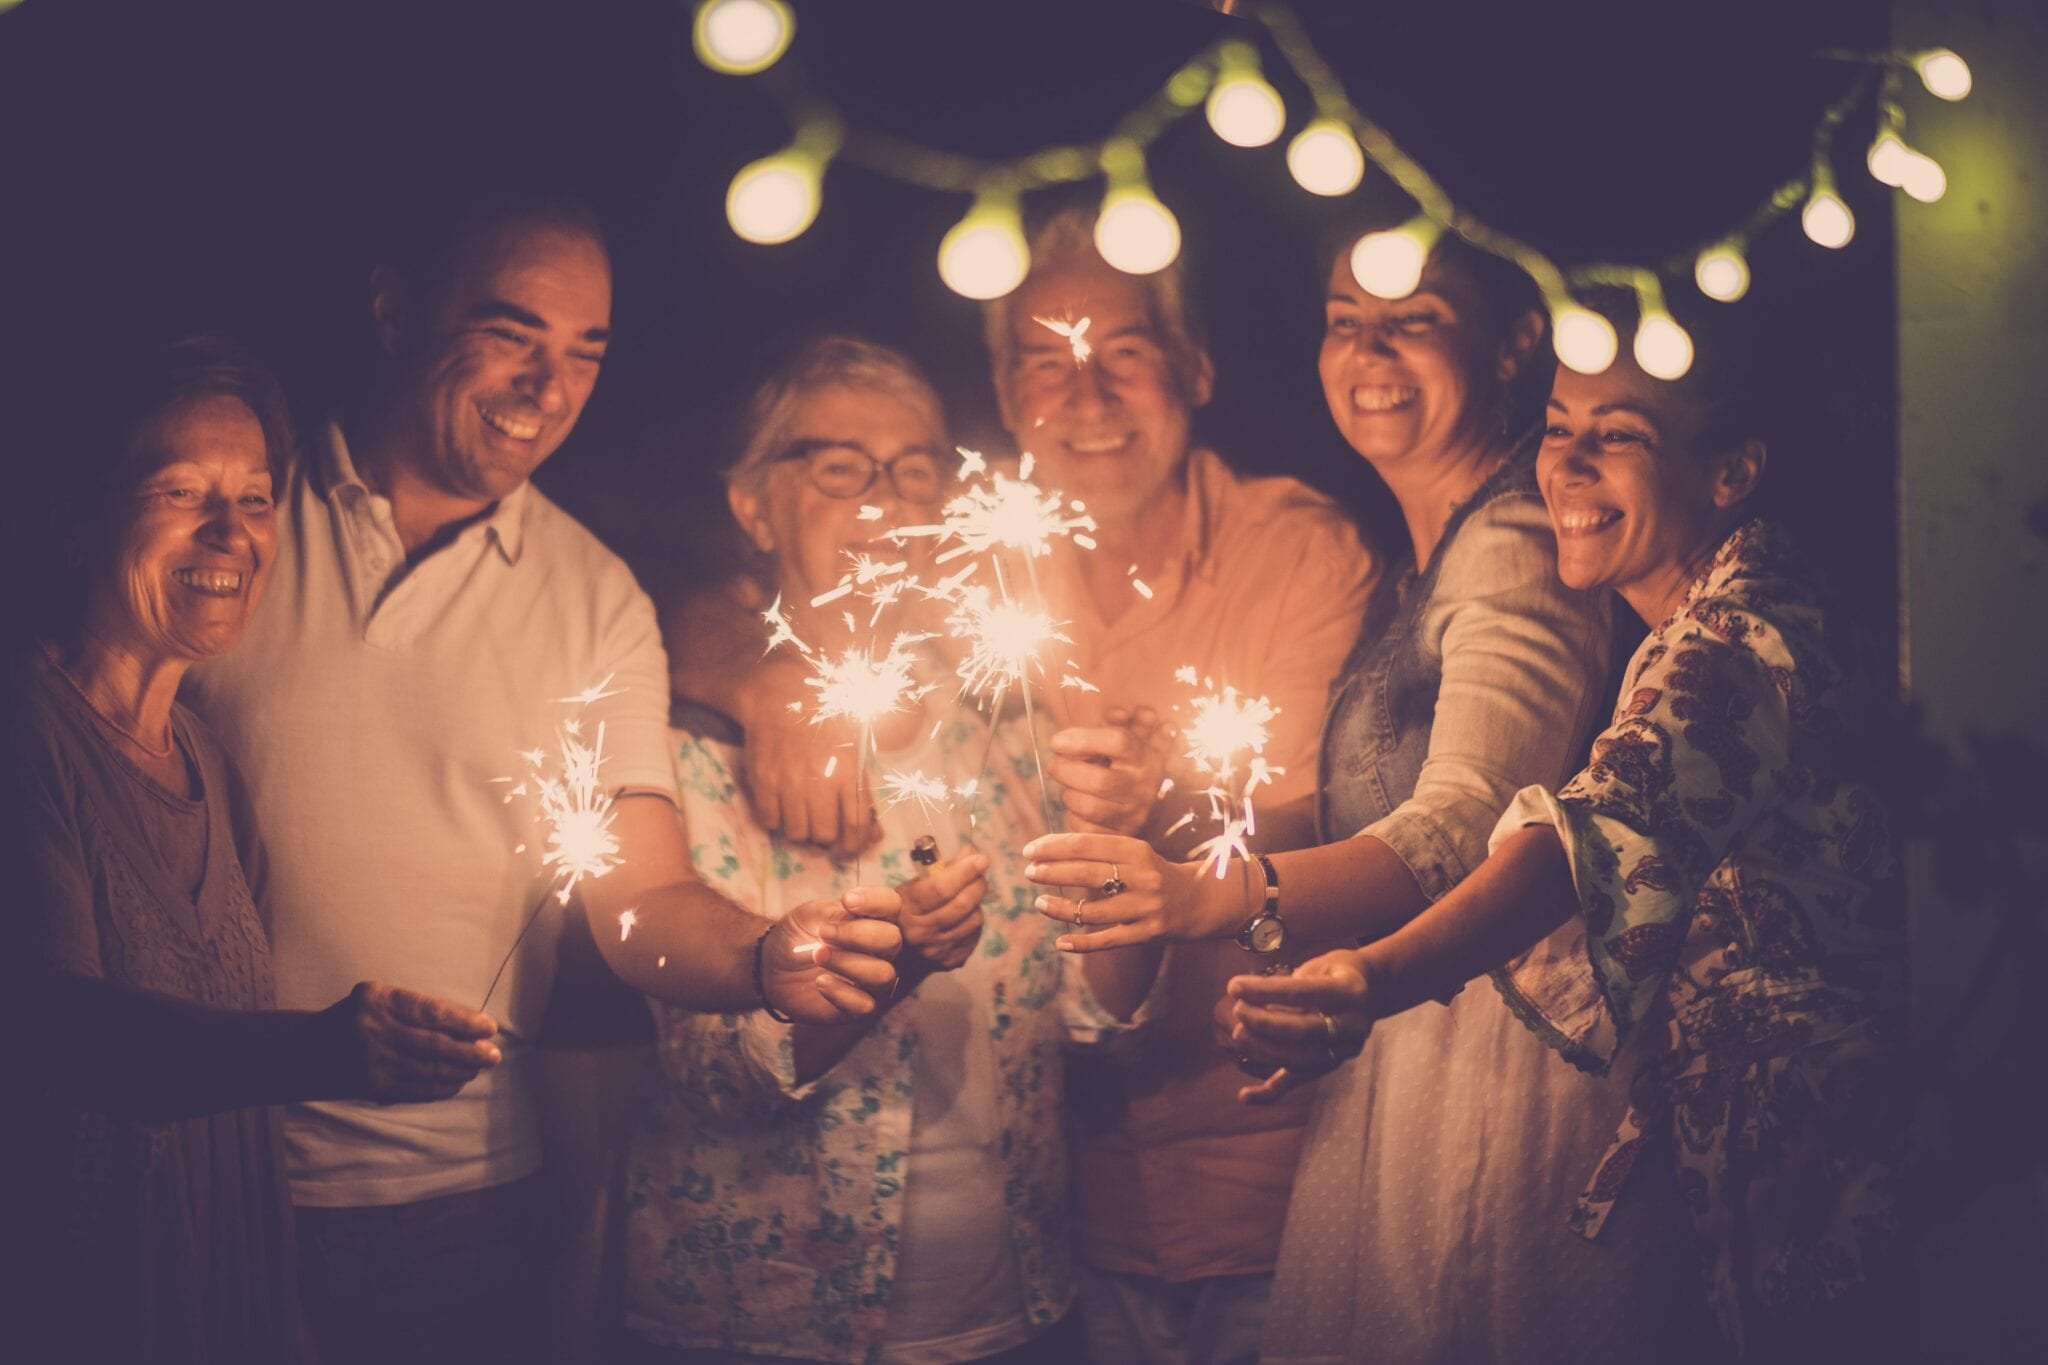 group of caucasian people friends with different ages celebrate together a birthday or new year eve by night outdoor at home. lights and sparkles with cheerful women and men having fun in friendship | Dr. michelle